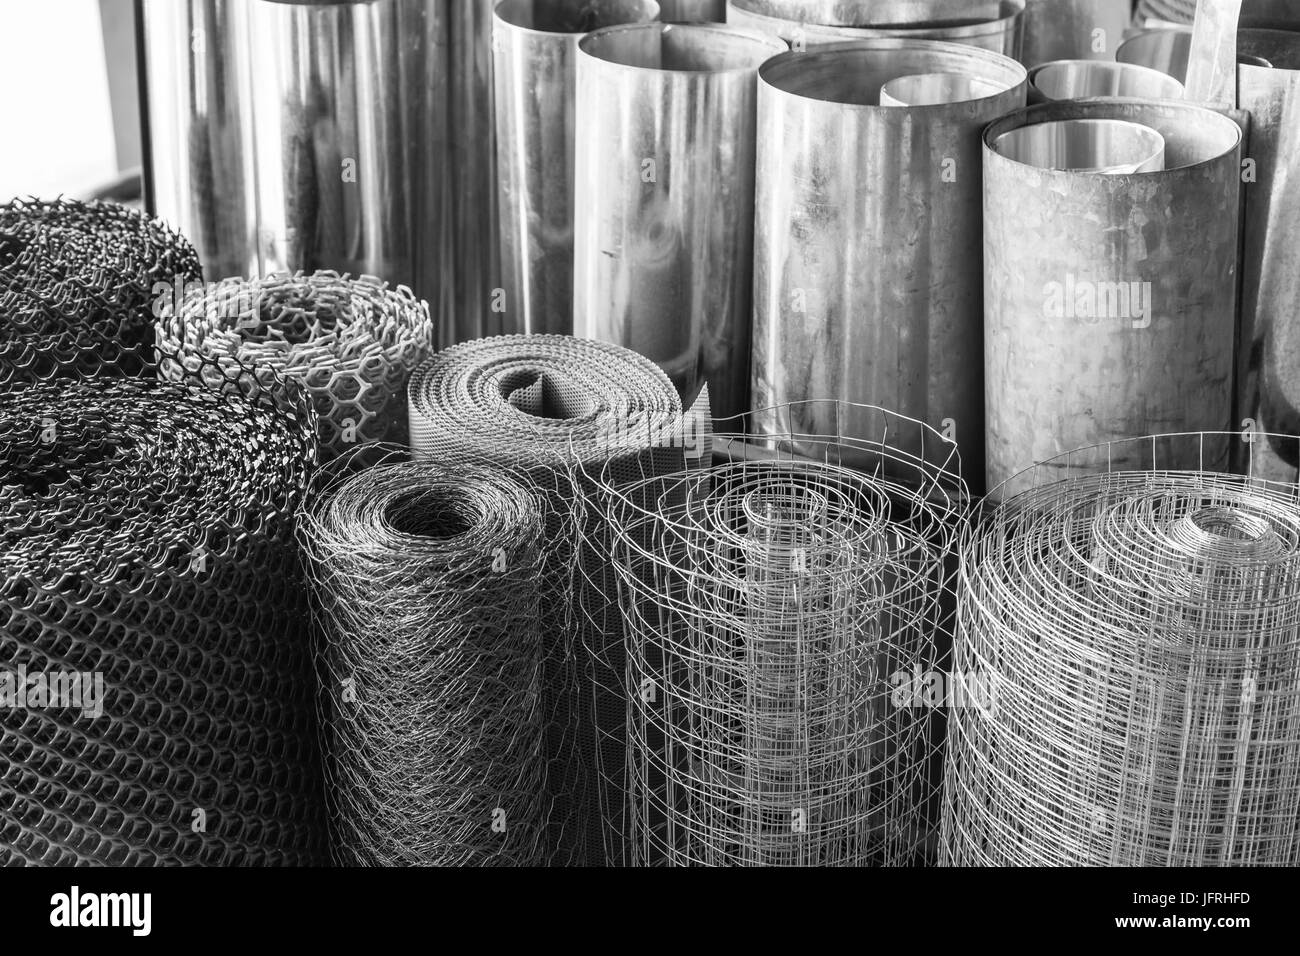 rolls of galvanized metal sheets, steel chicken wire mesh, and ...